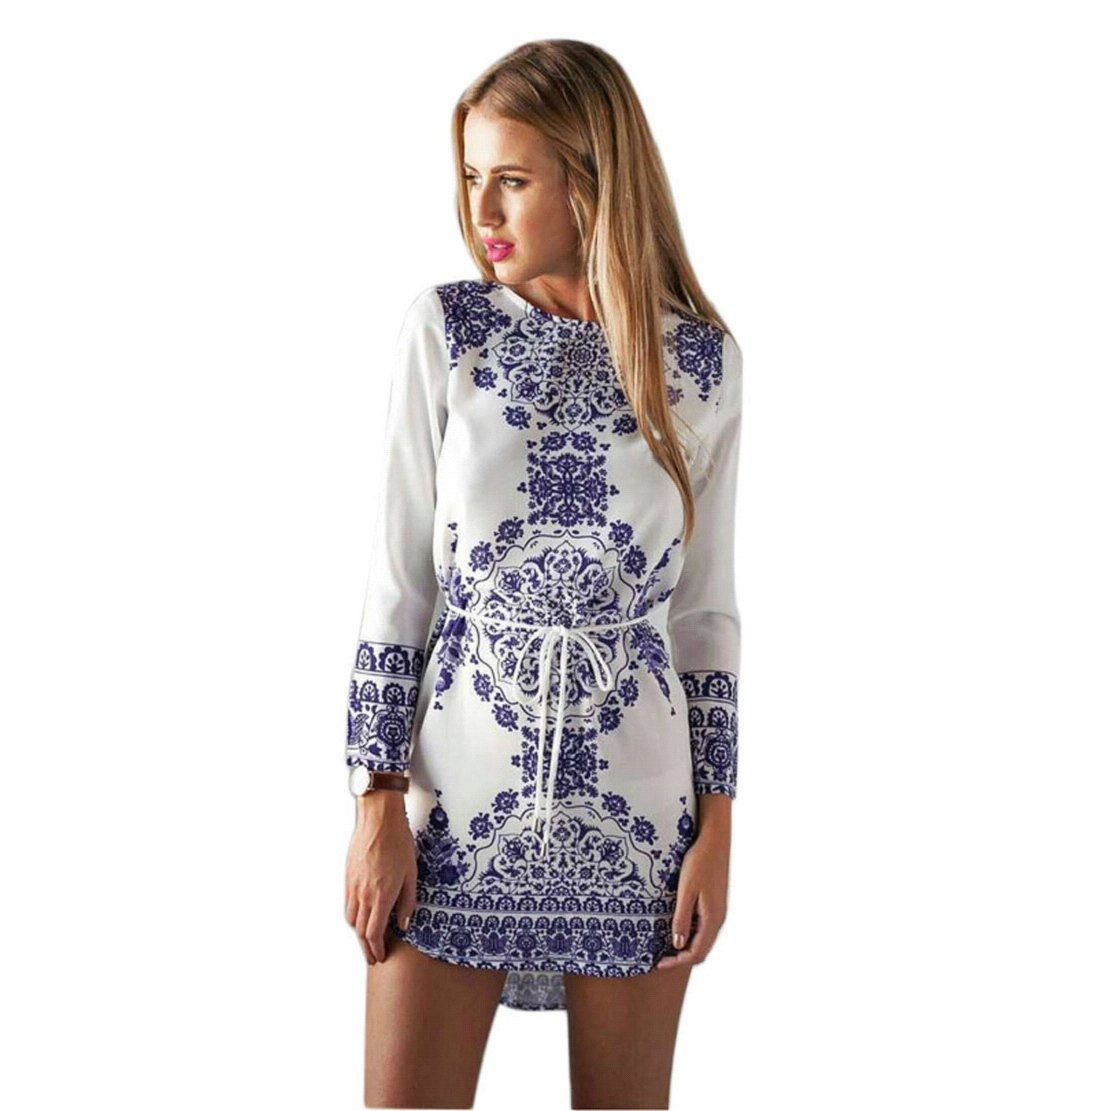 Towallmarktmwomens long sleeved floral print cocktail party dress